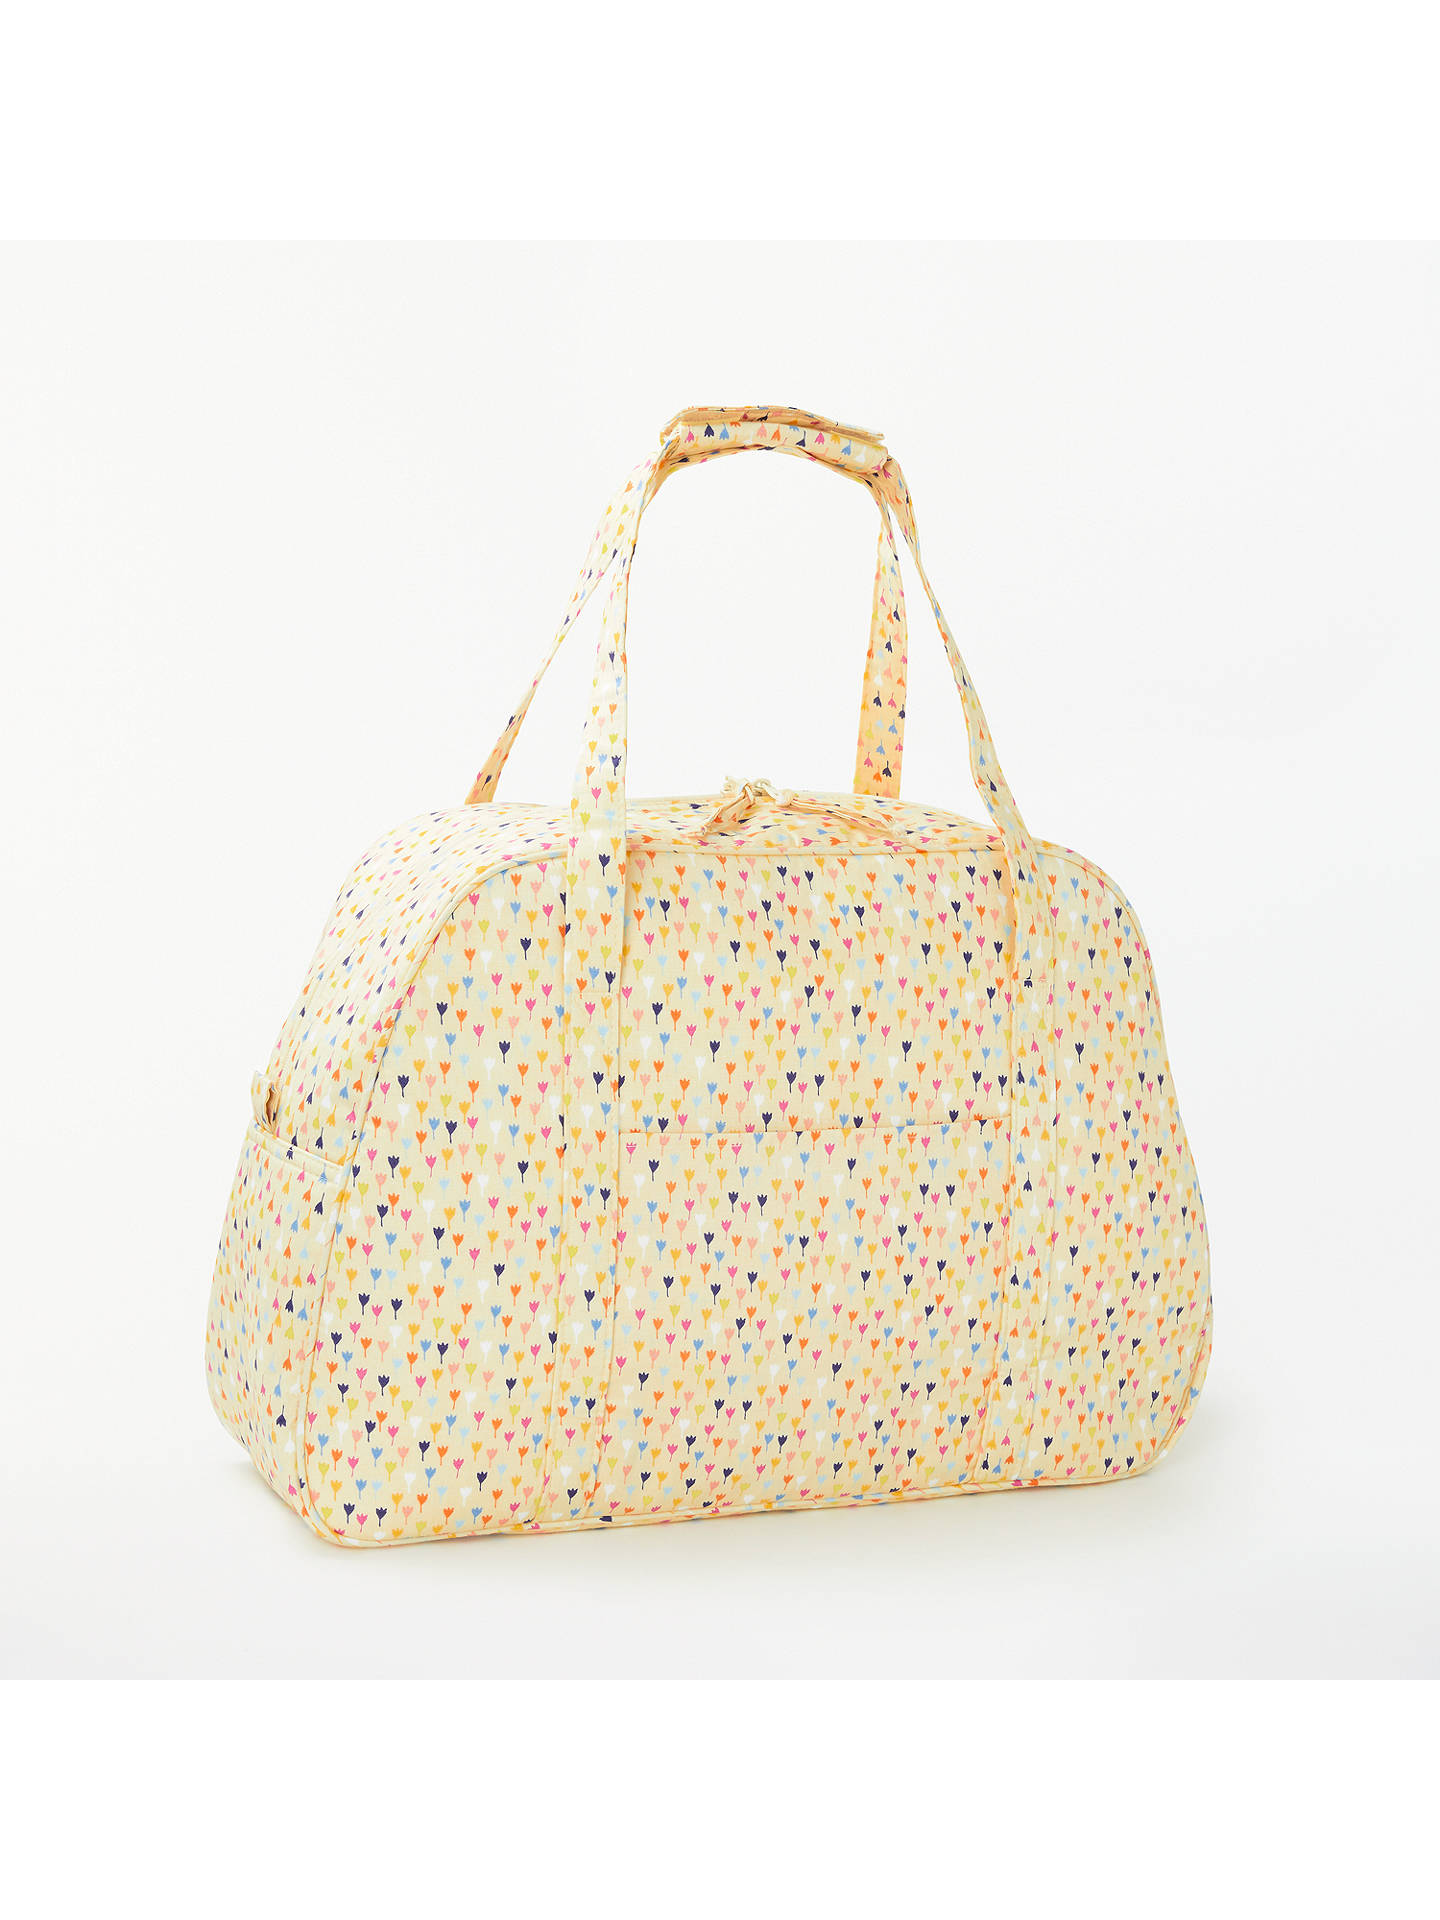 Buy John Lewis & Partners Distant Dreams Print Sewing Machine Bag, Cream Online at johnlewis.com